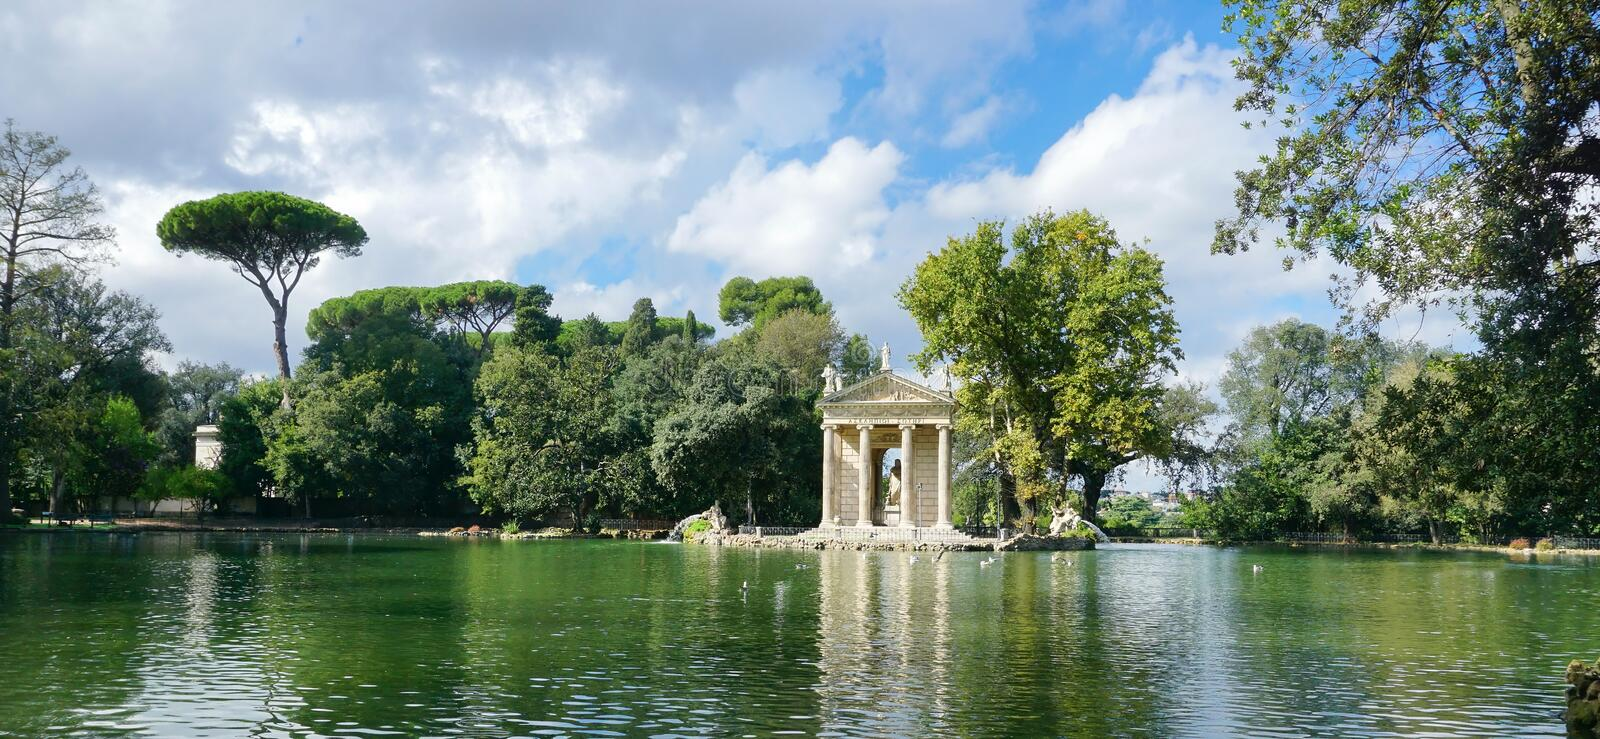 The lake of Villa Borghese, the temple of Aesculapius stock photos